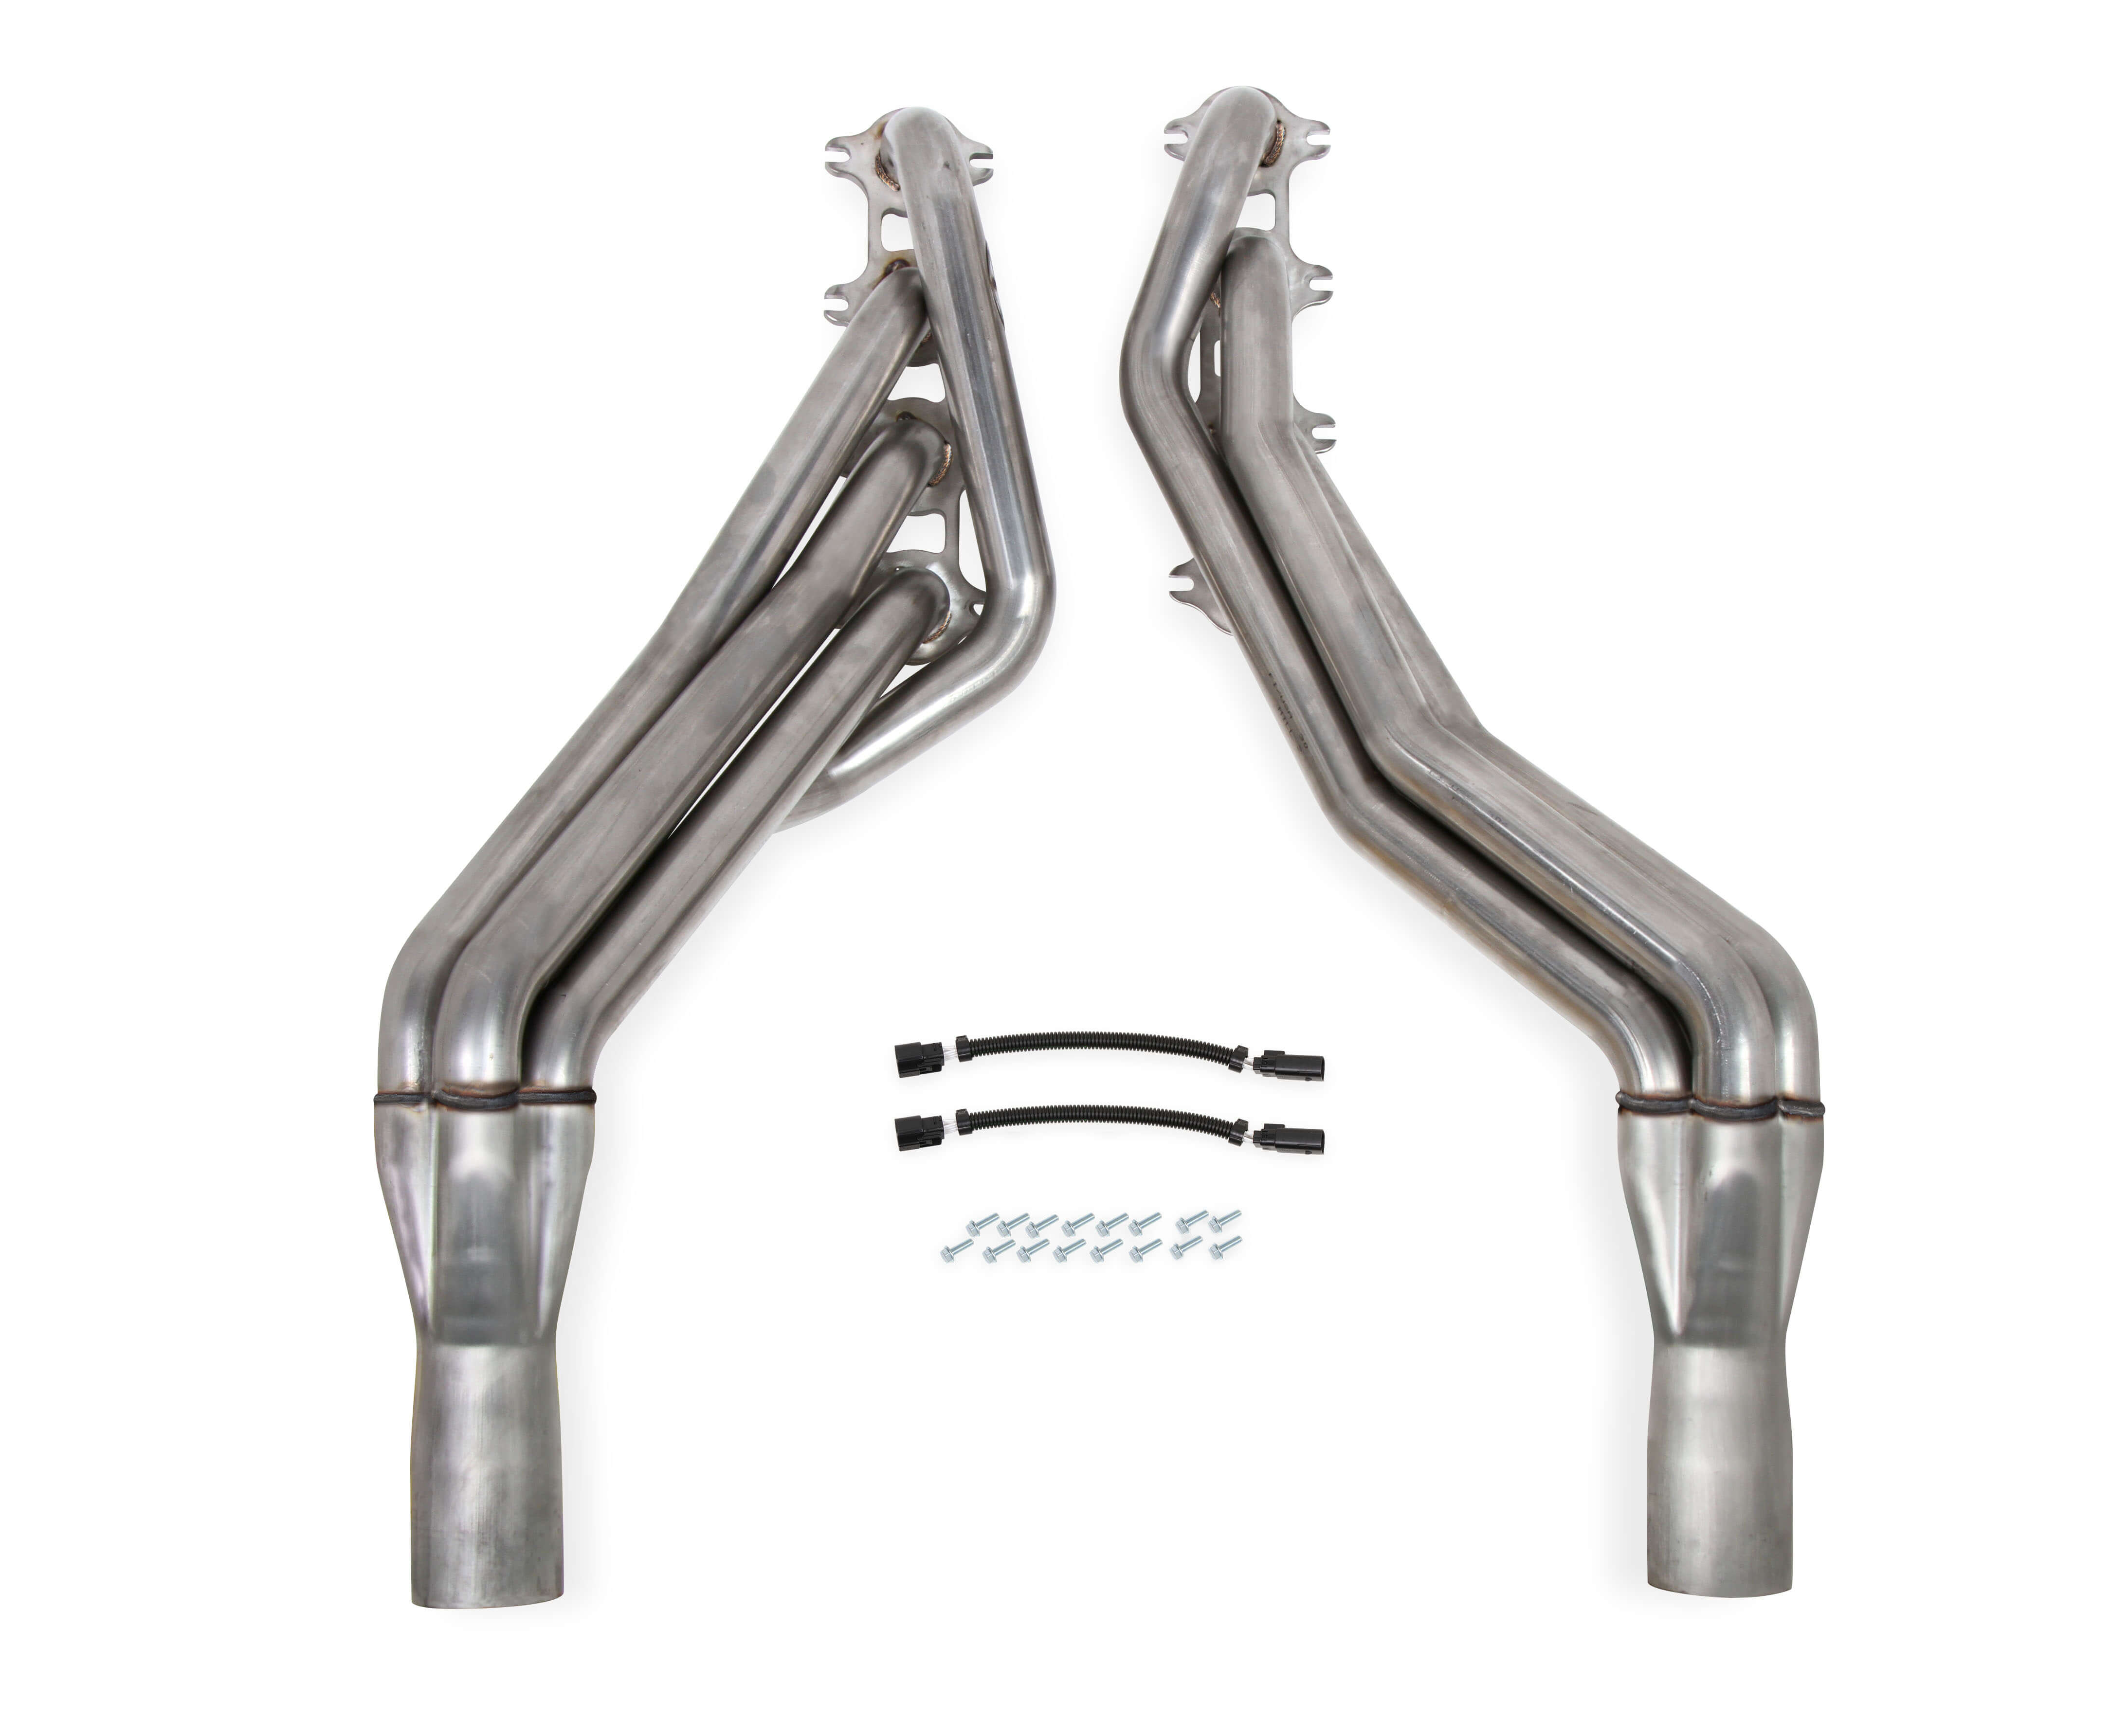 "2005-2009 Ford Mustang GT 4.6L V8 Hooker Blackheart 1 3/4"" Stainless Steel Long Tube Headers"